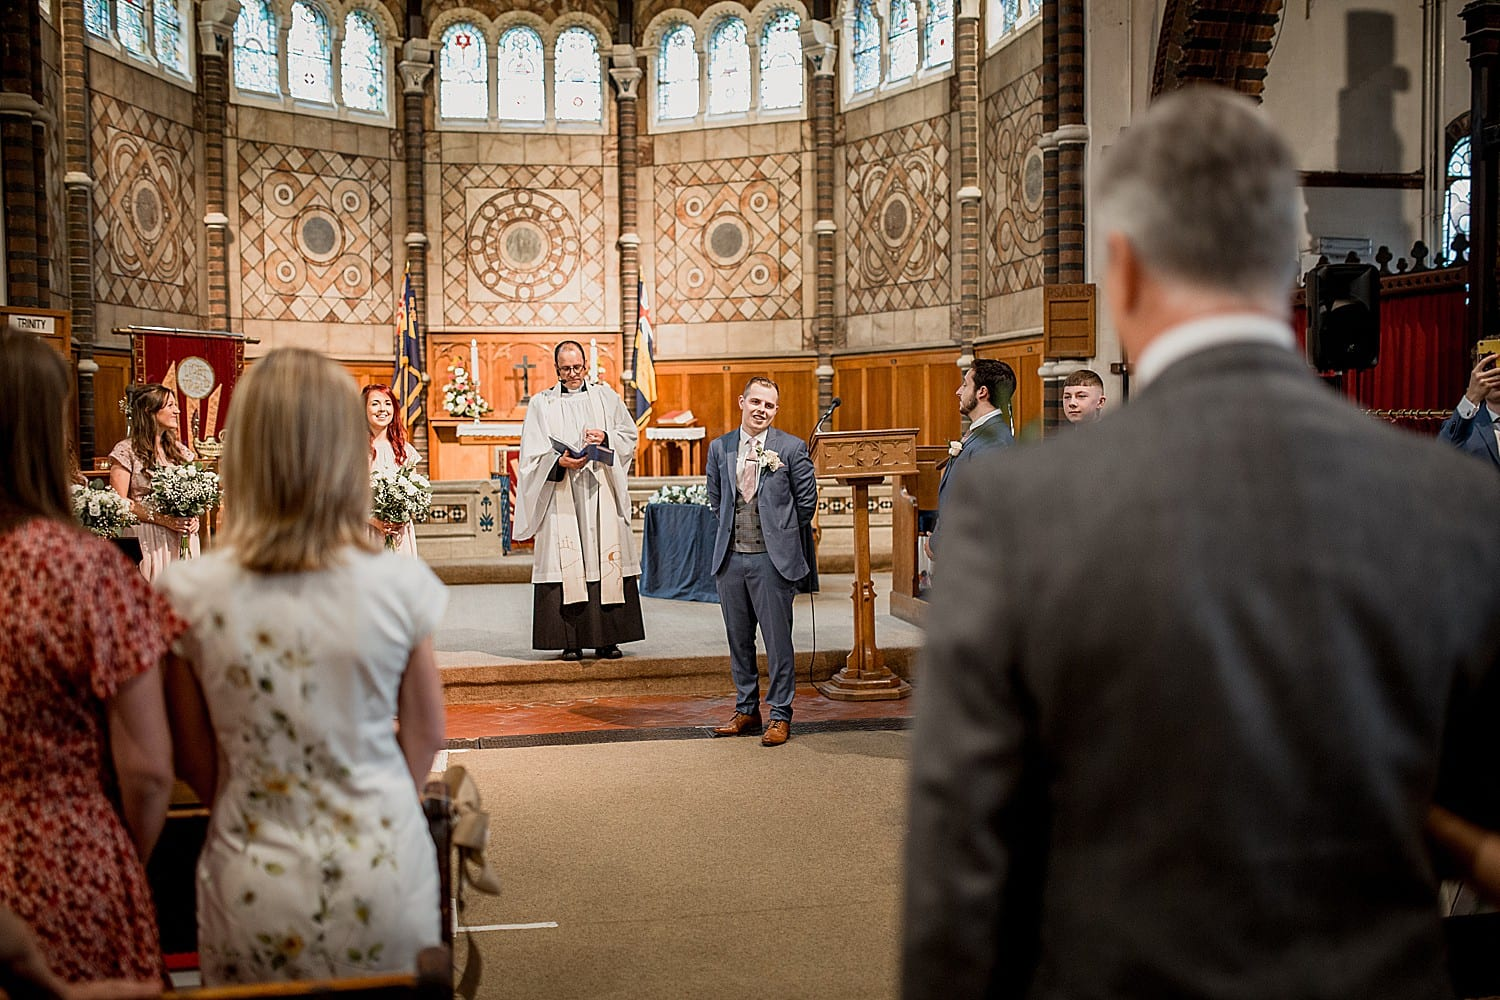 Groom sees his bride at church wedding